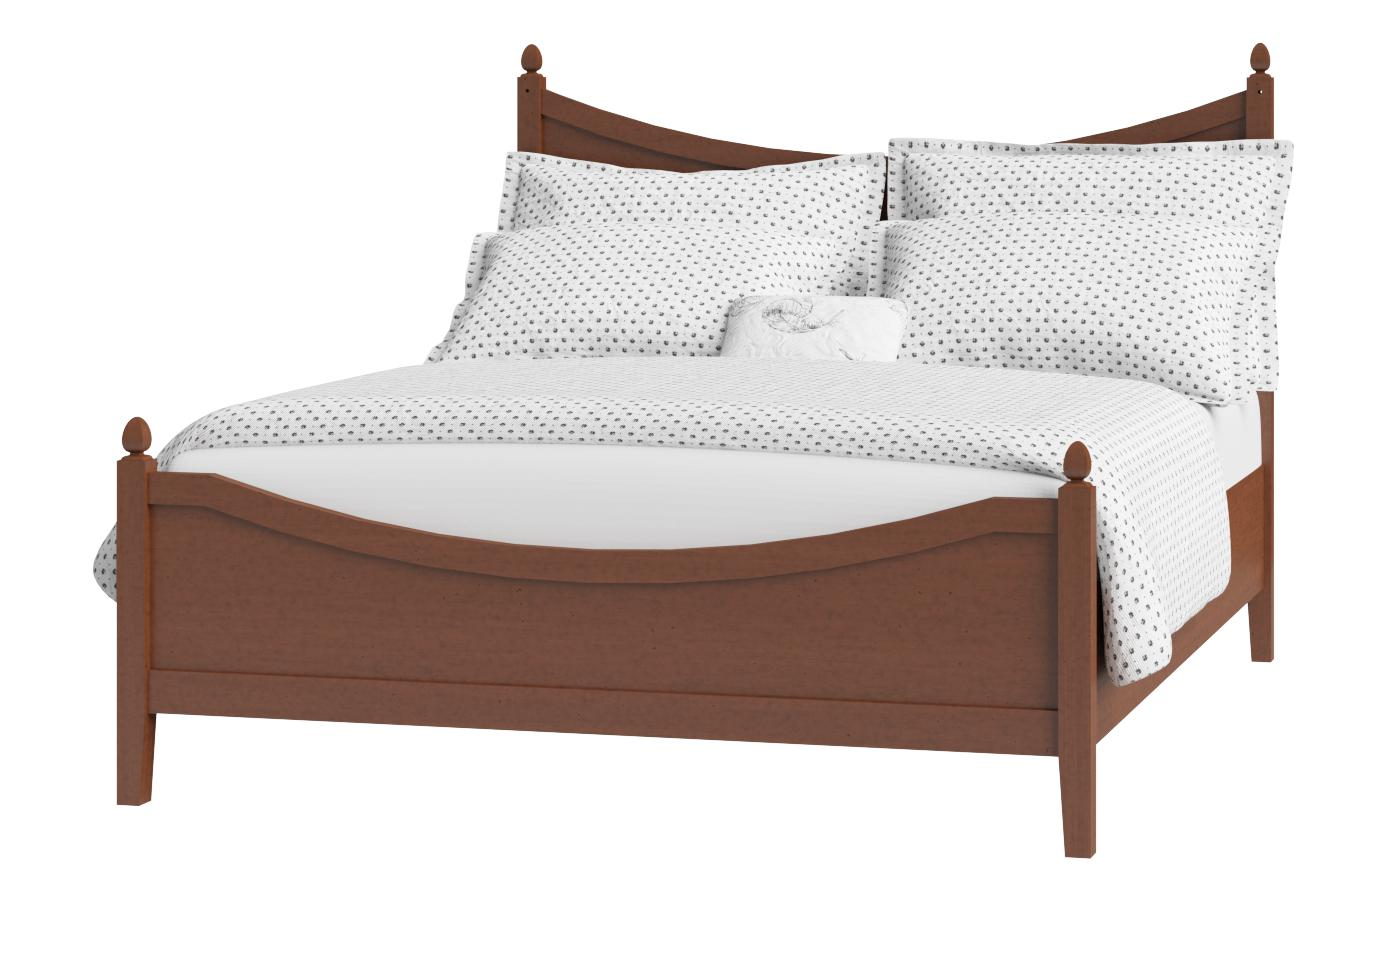 Cutout of Blake low footend wood bed in a dark cherry finish